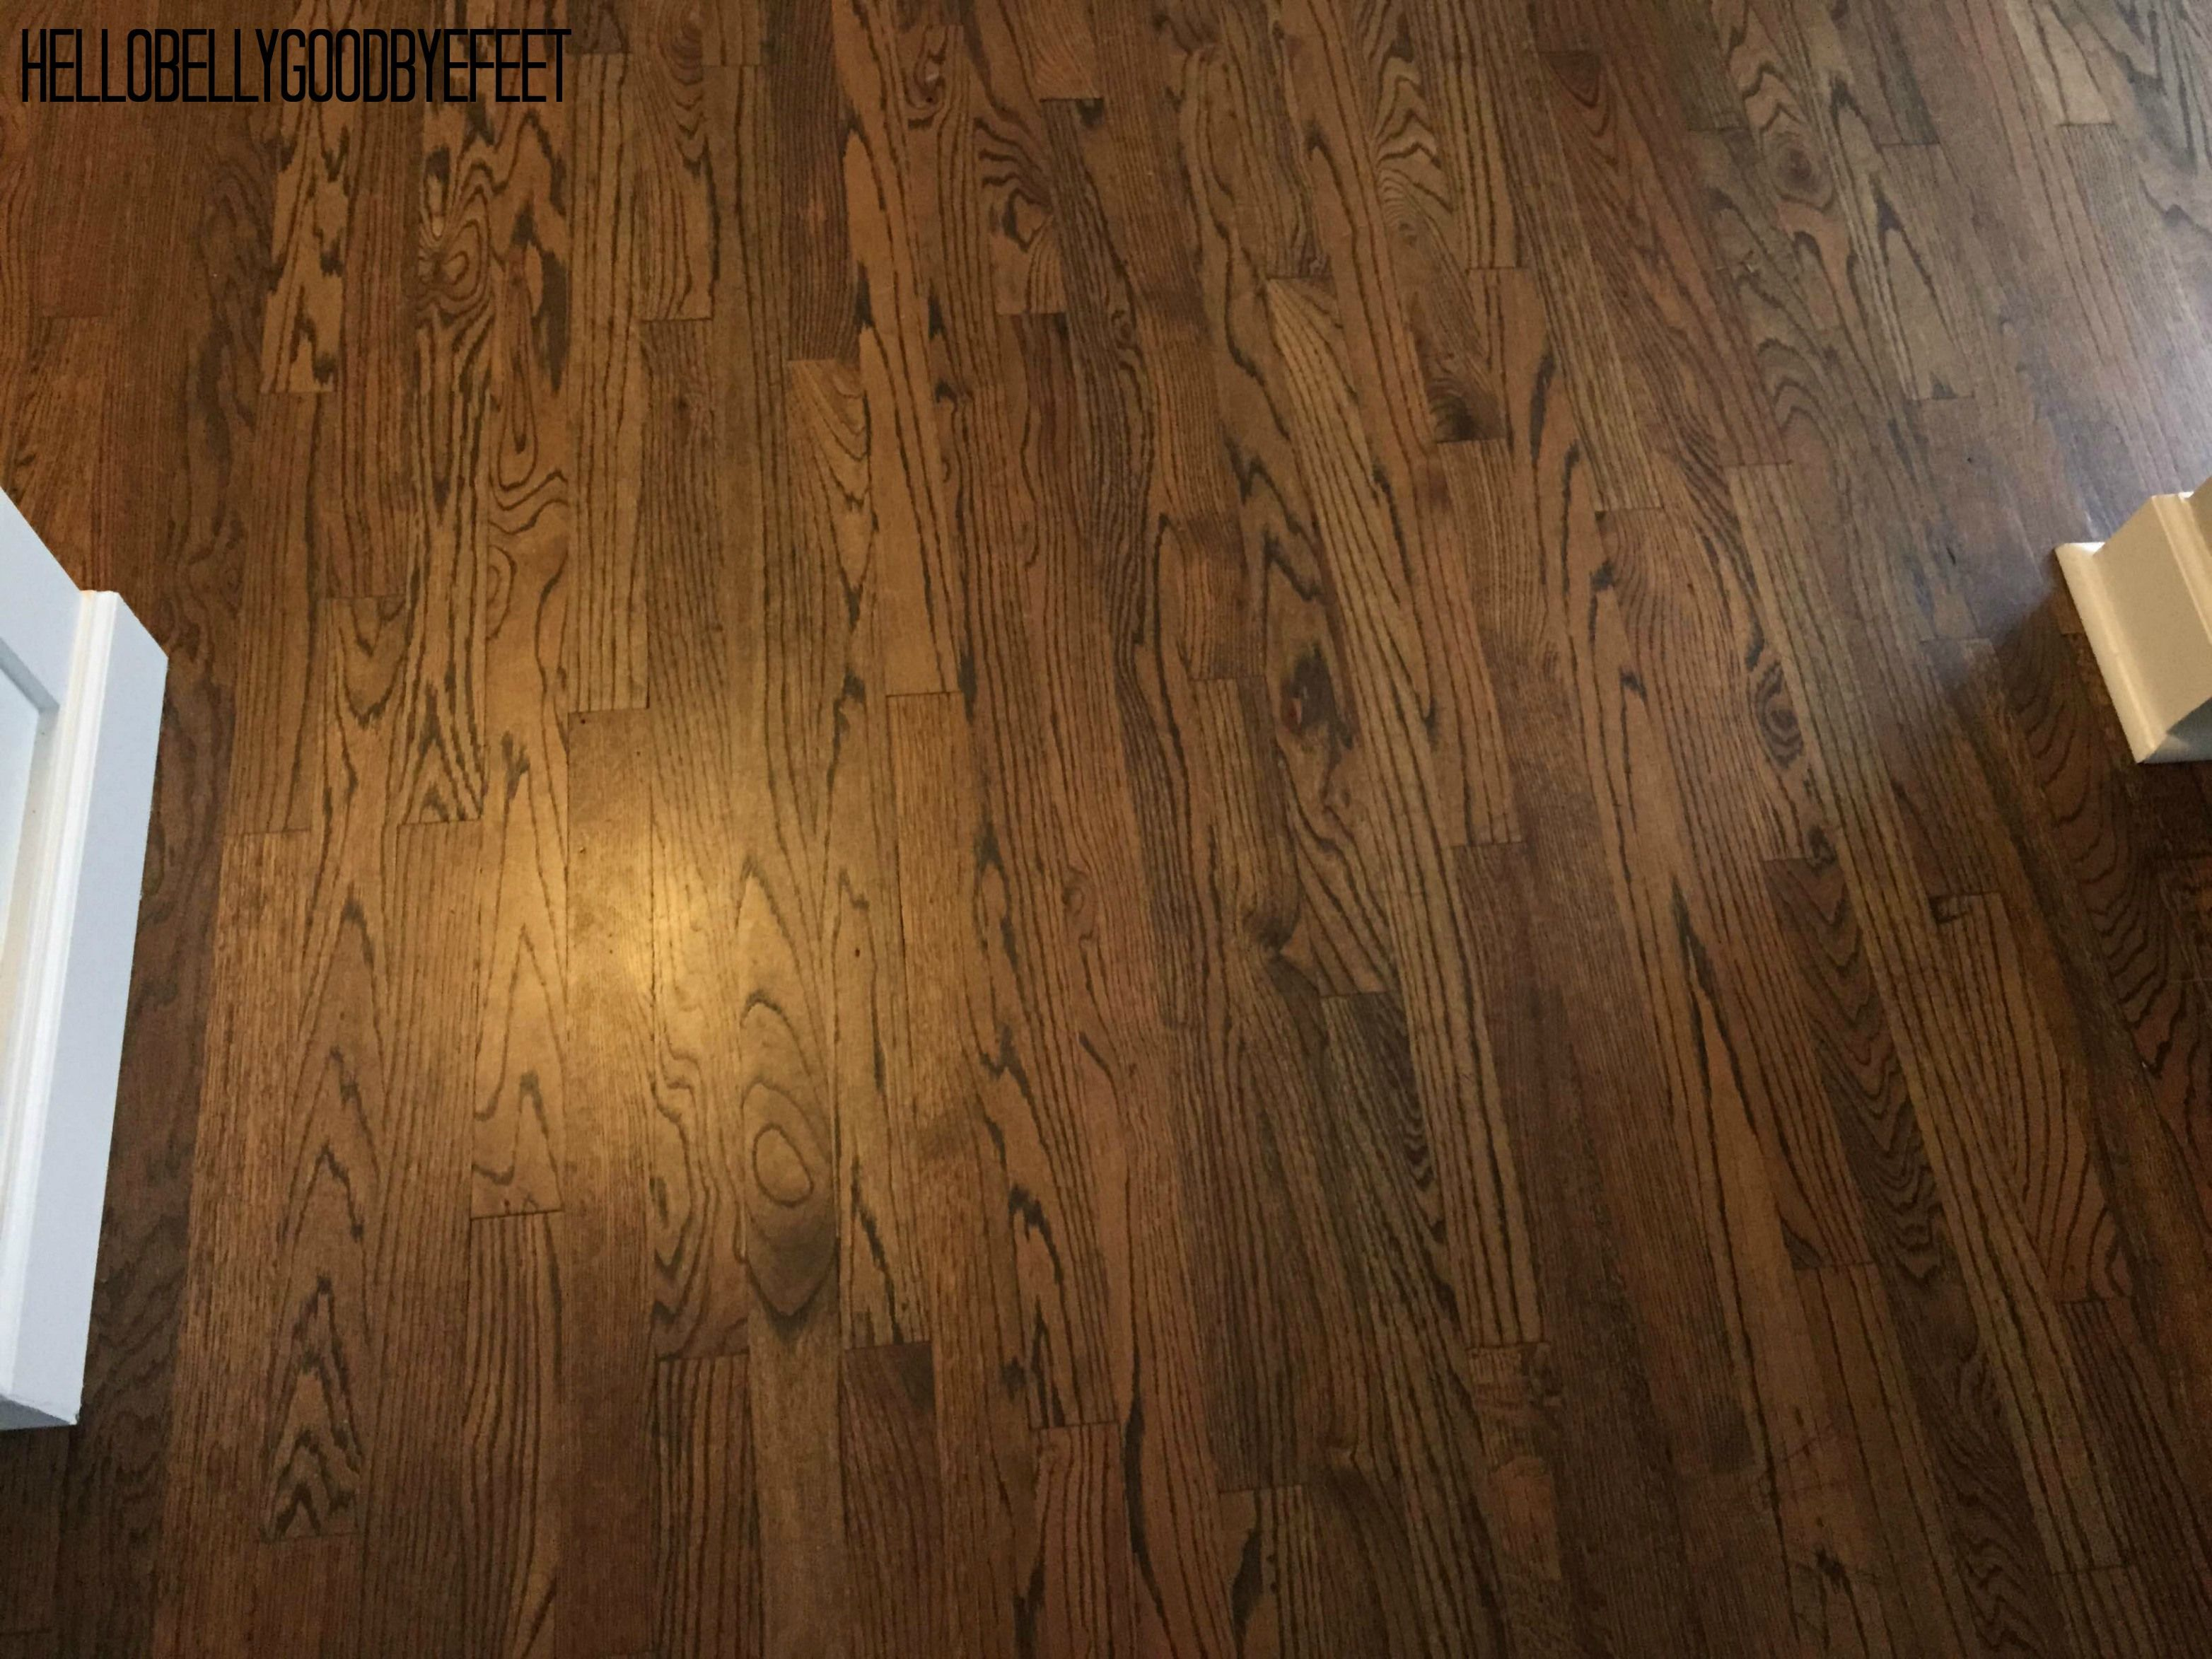 Hardwood floor stain, Dark Walnut by Minwax in 2020 ...